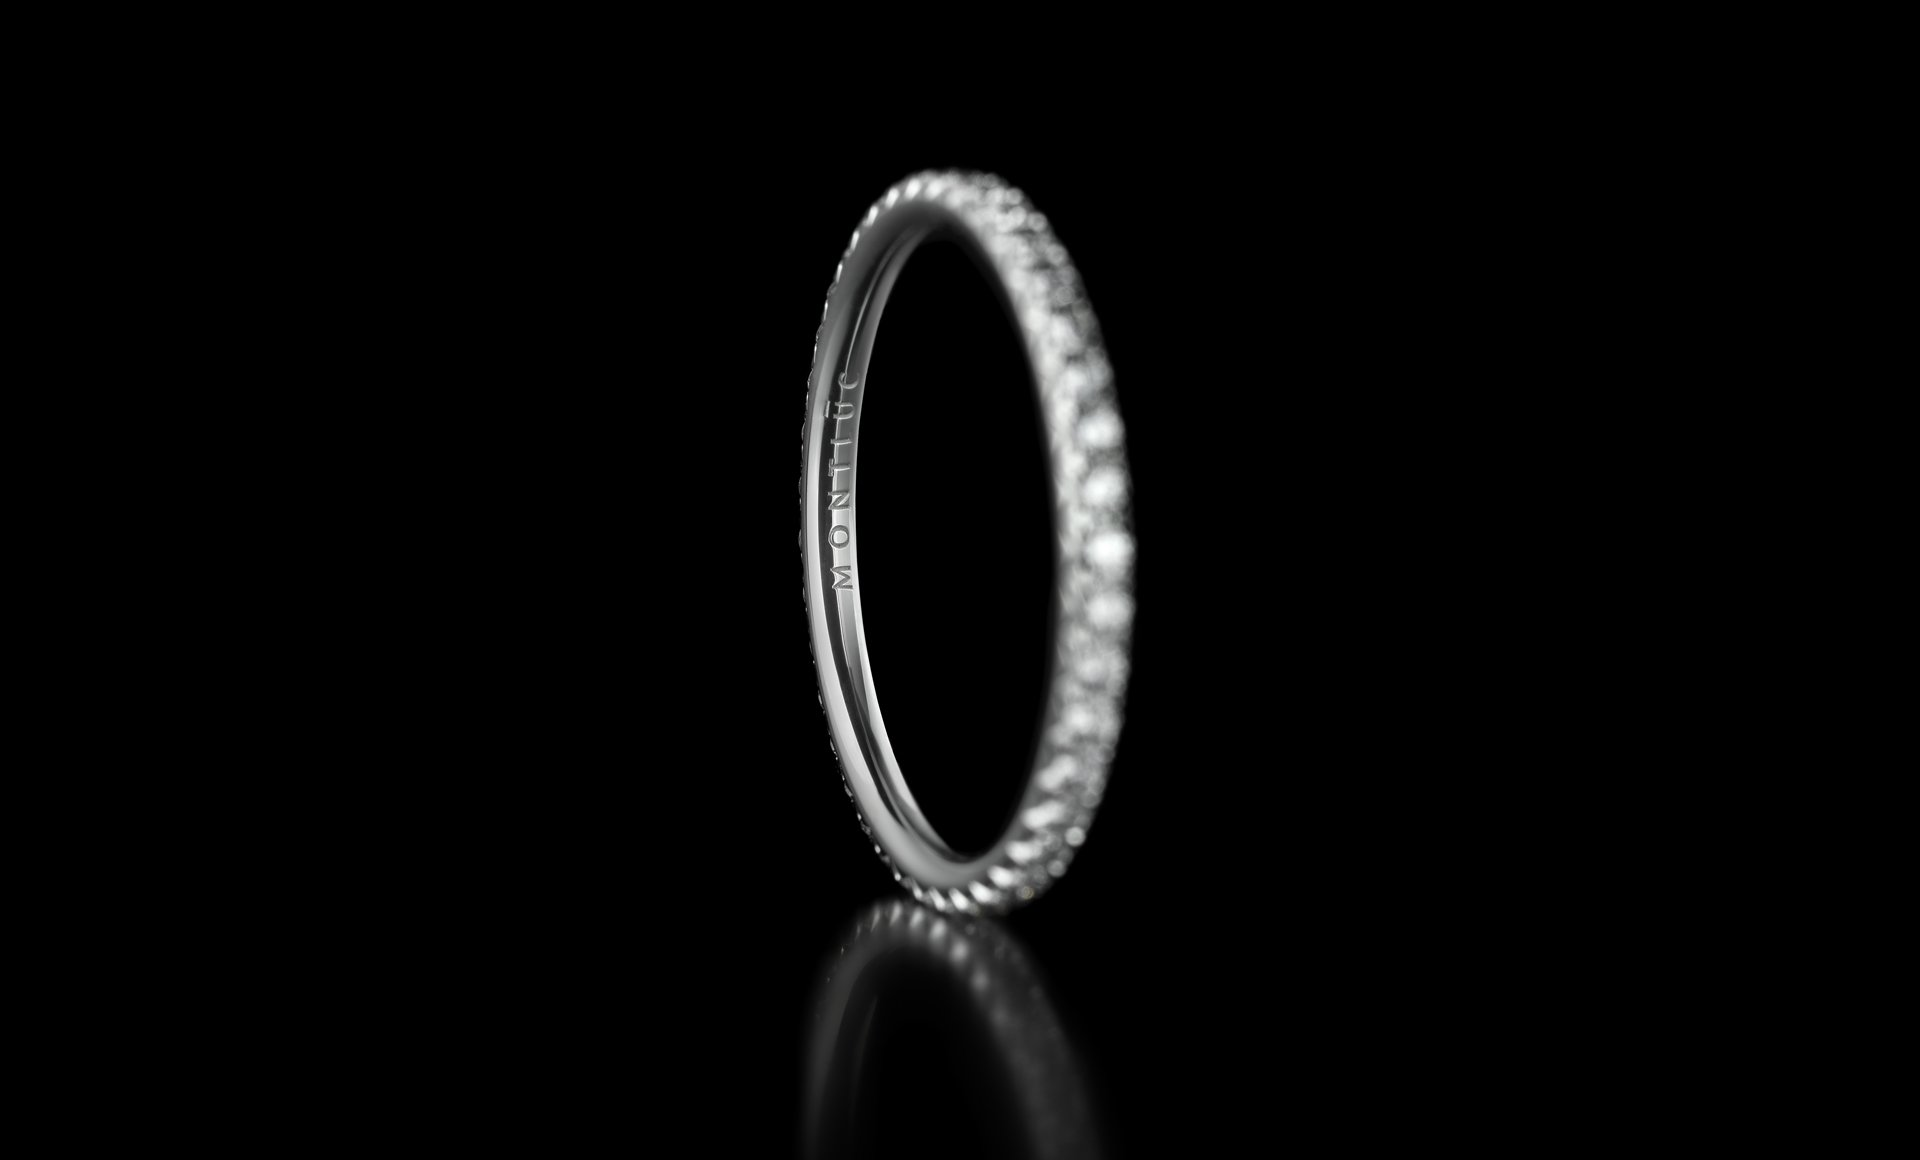 Montluc - Halo No 1 diamond ring, viewed from an angle, with engravement in focus.